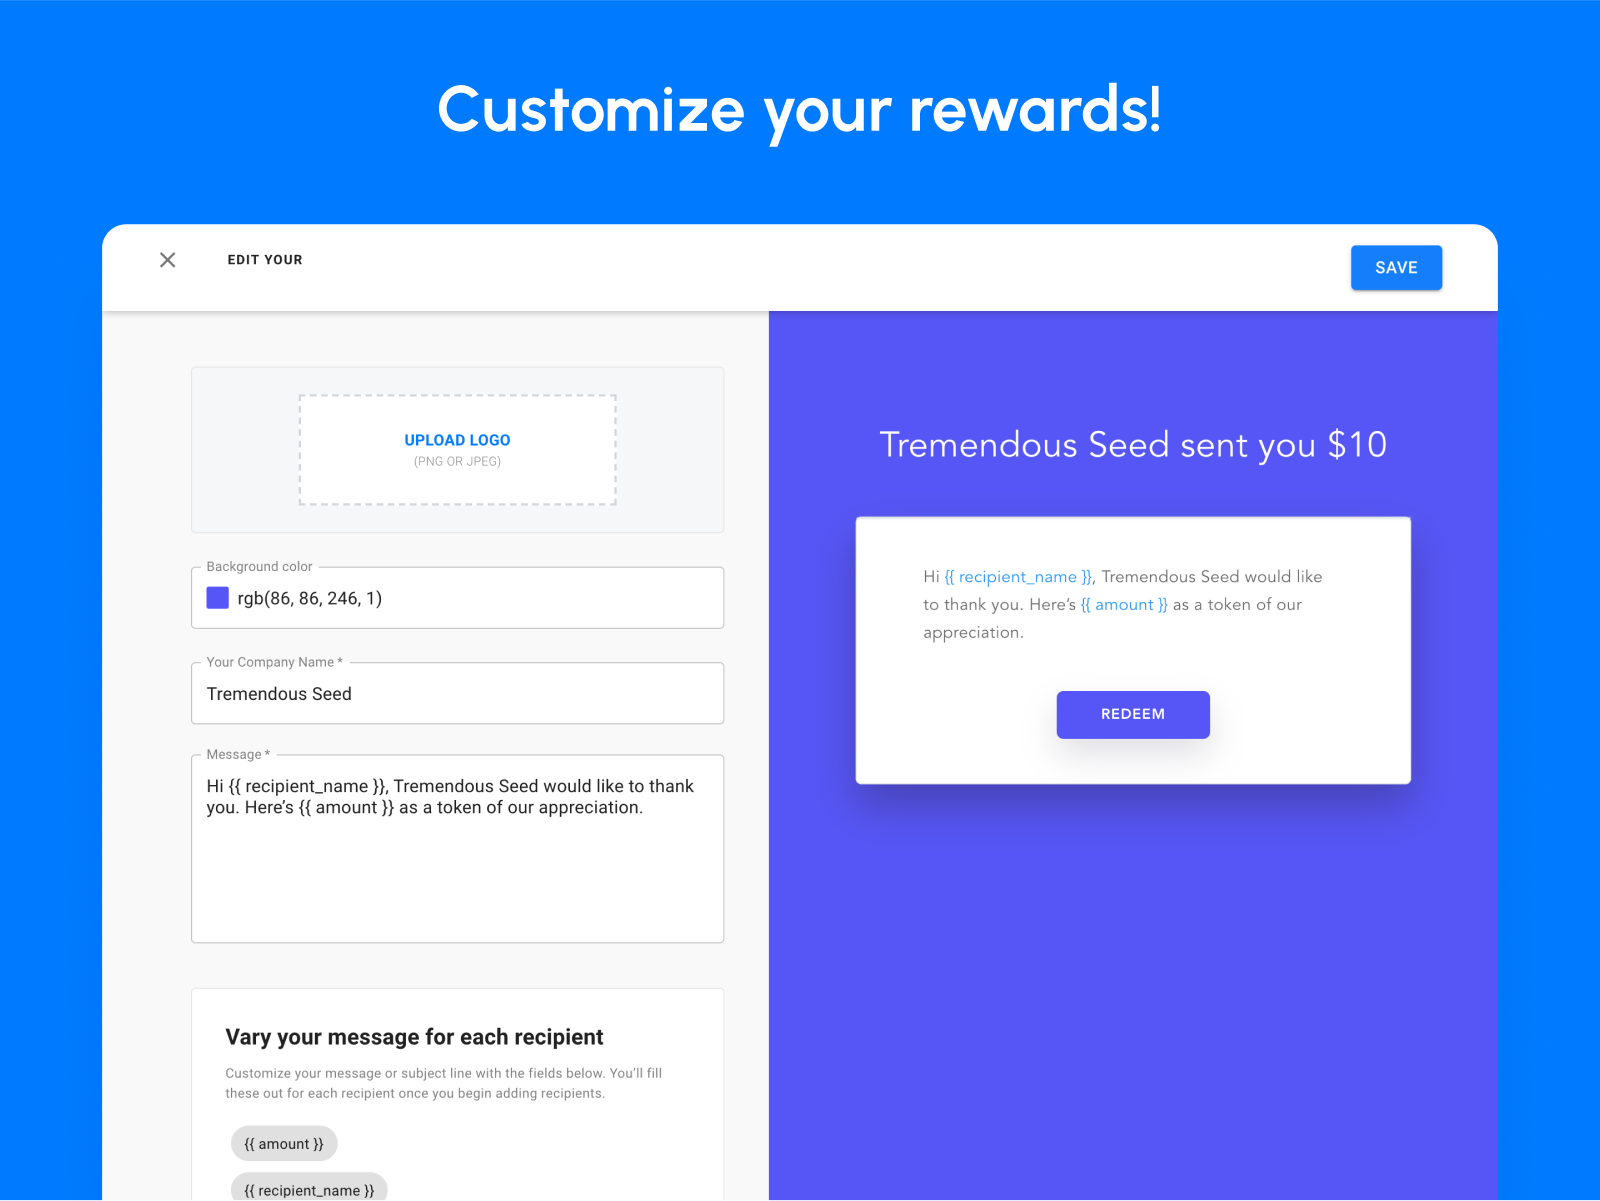 Tremendous Software - Personalize the redemption experience with campaign templates.